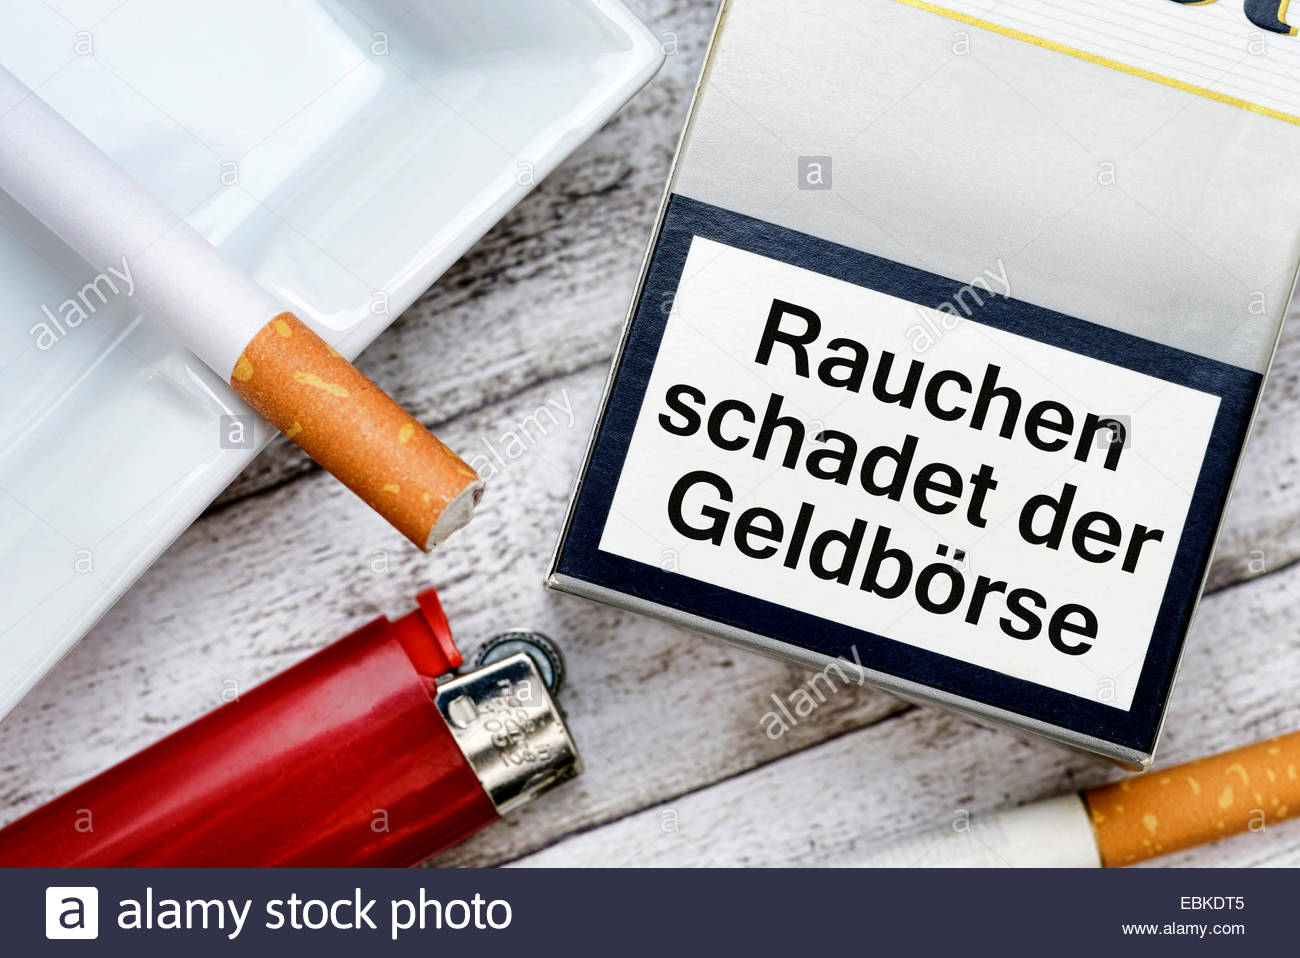 cigarette packet with the inscription 'Rauchen macht arm' ('Smoking harms your purse'), symbol photo - Stock Image